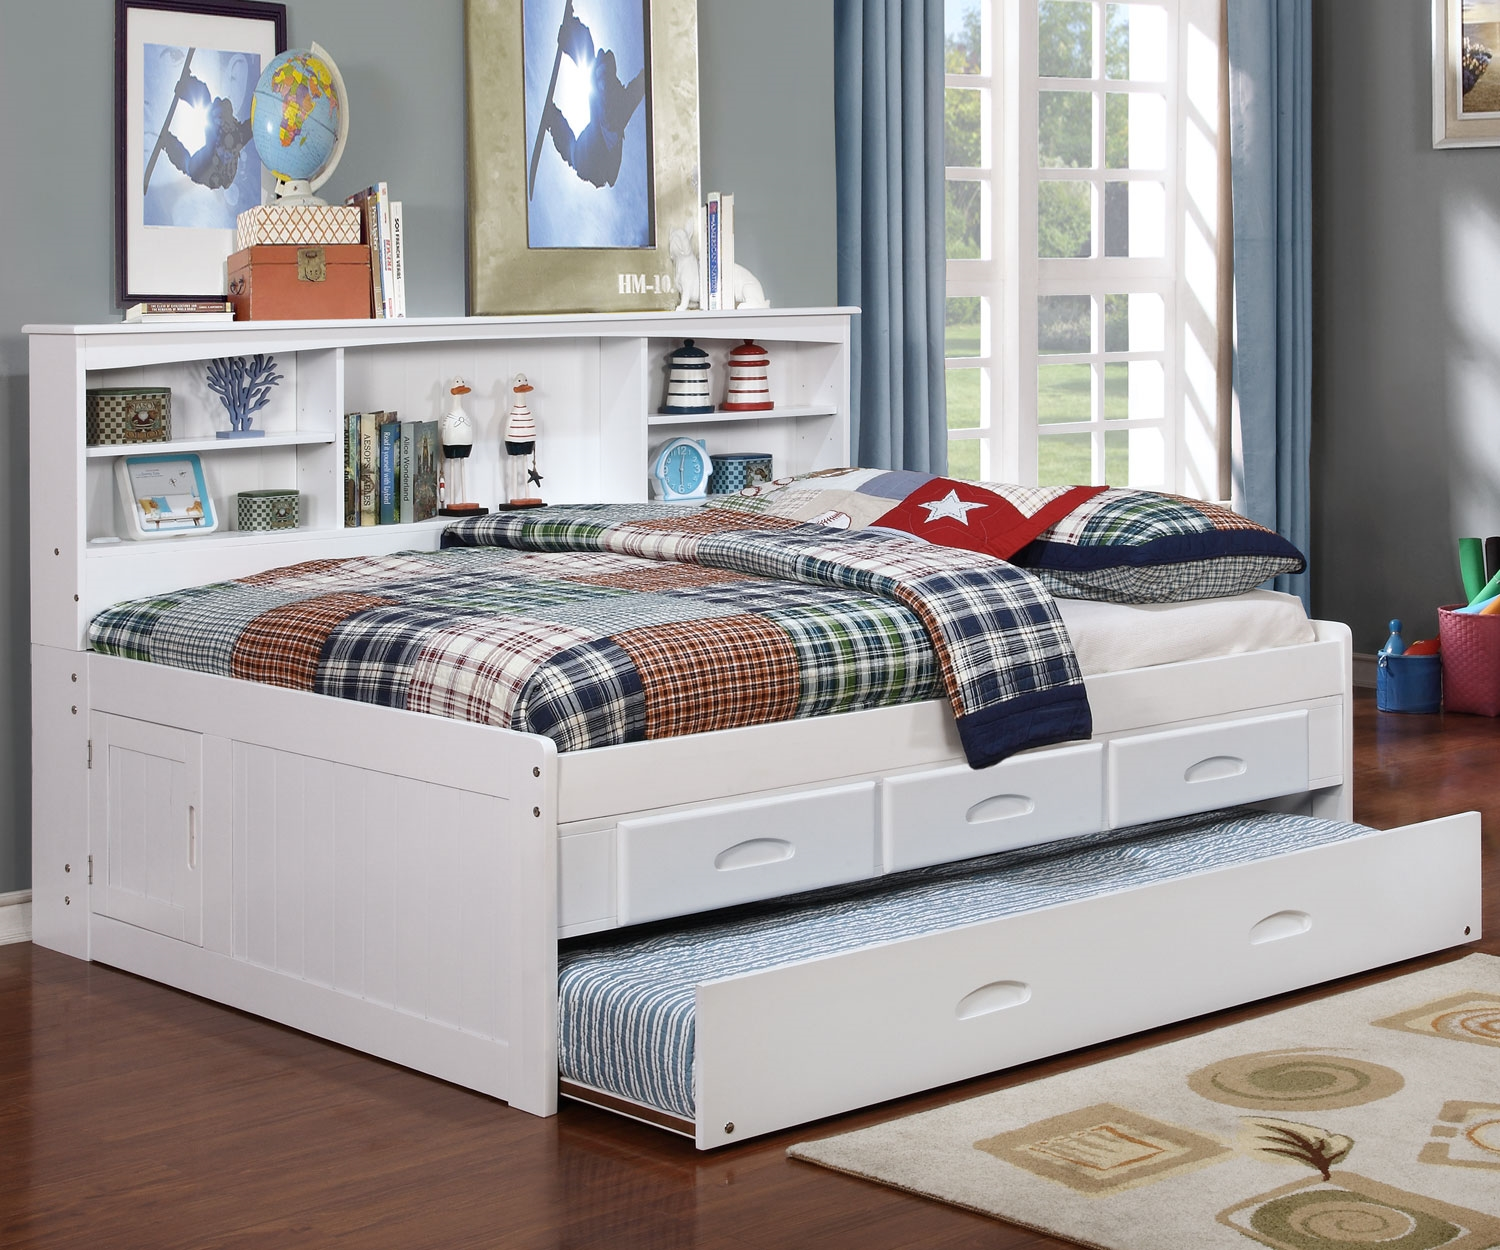 DWF0223-white Bookcase Daybed - White Full Bookcase Daybed - All American Furniture - Buy 4 Less